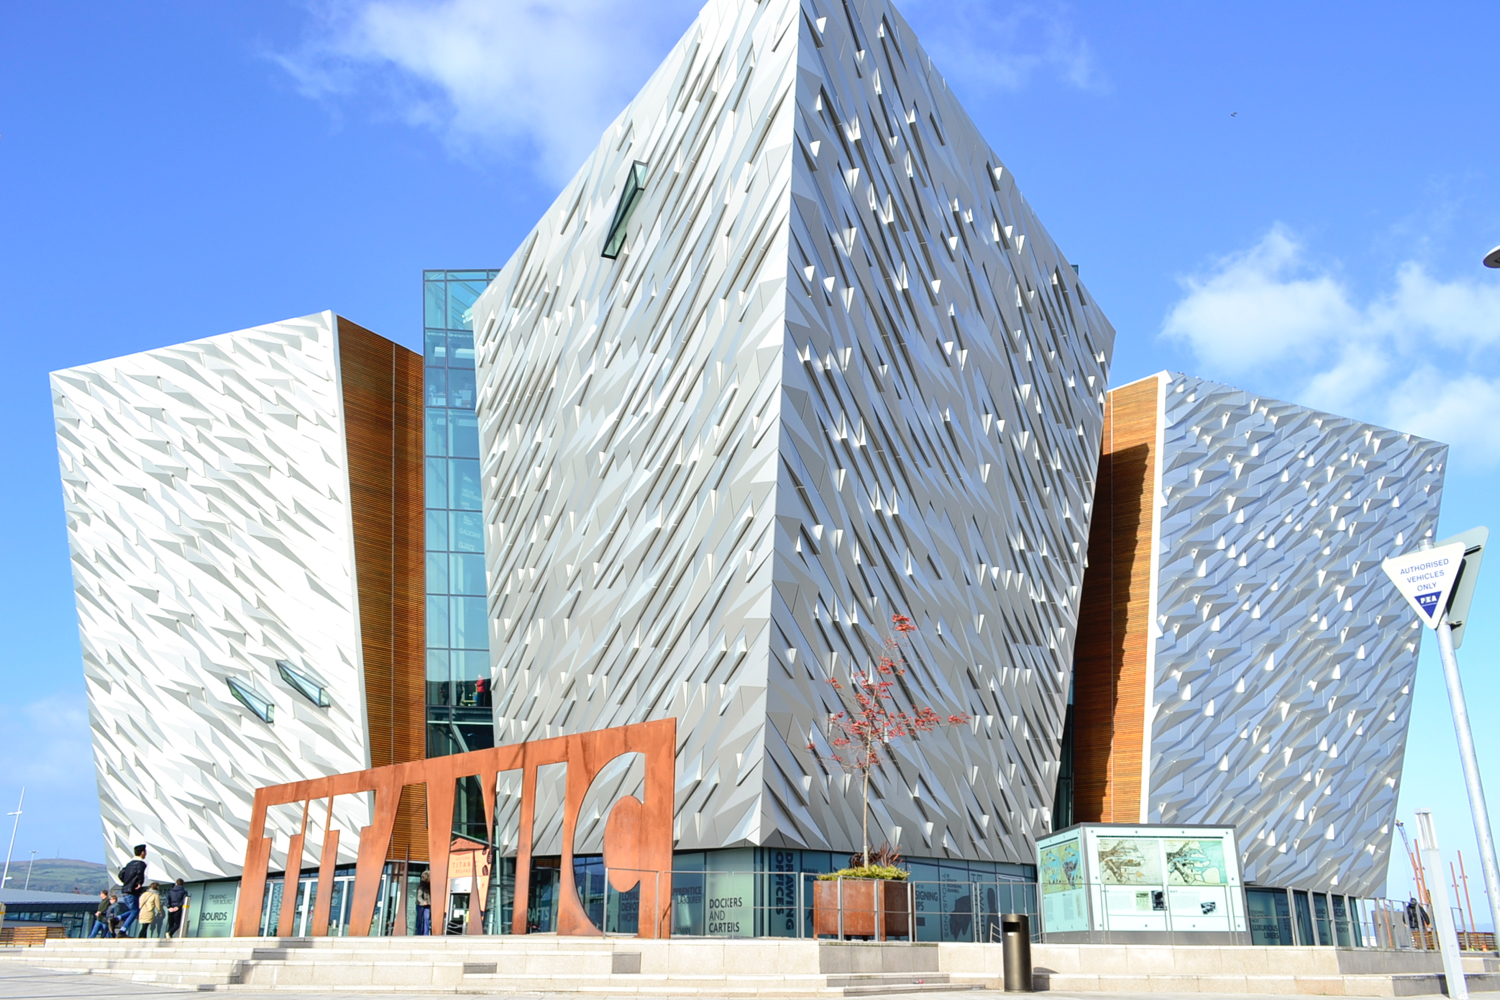 Titanic Belfast exterior clear day blue sky